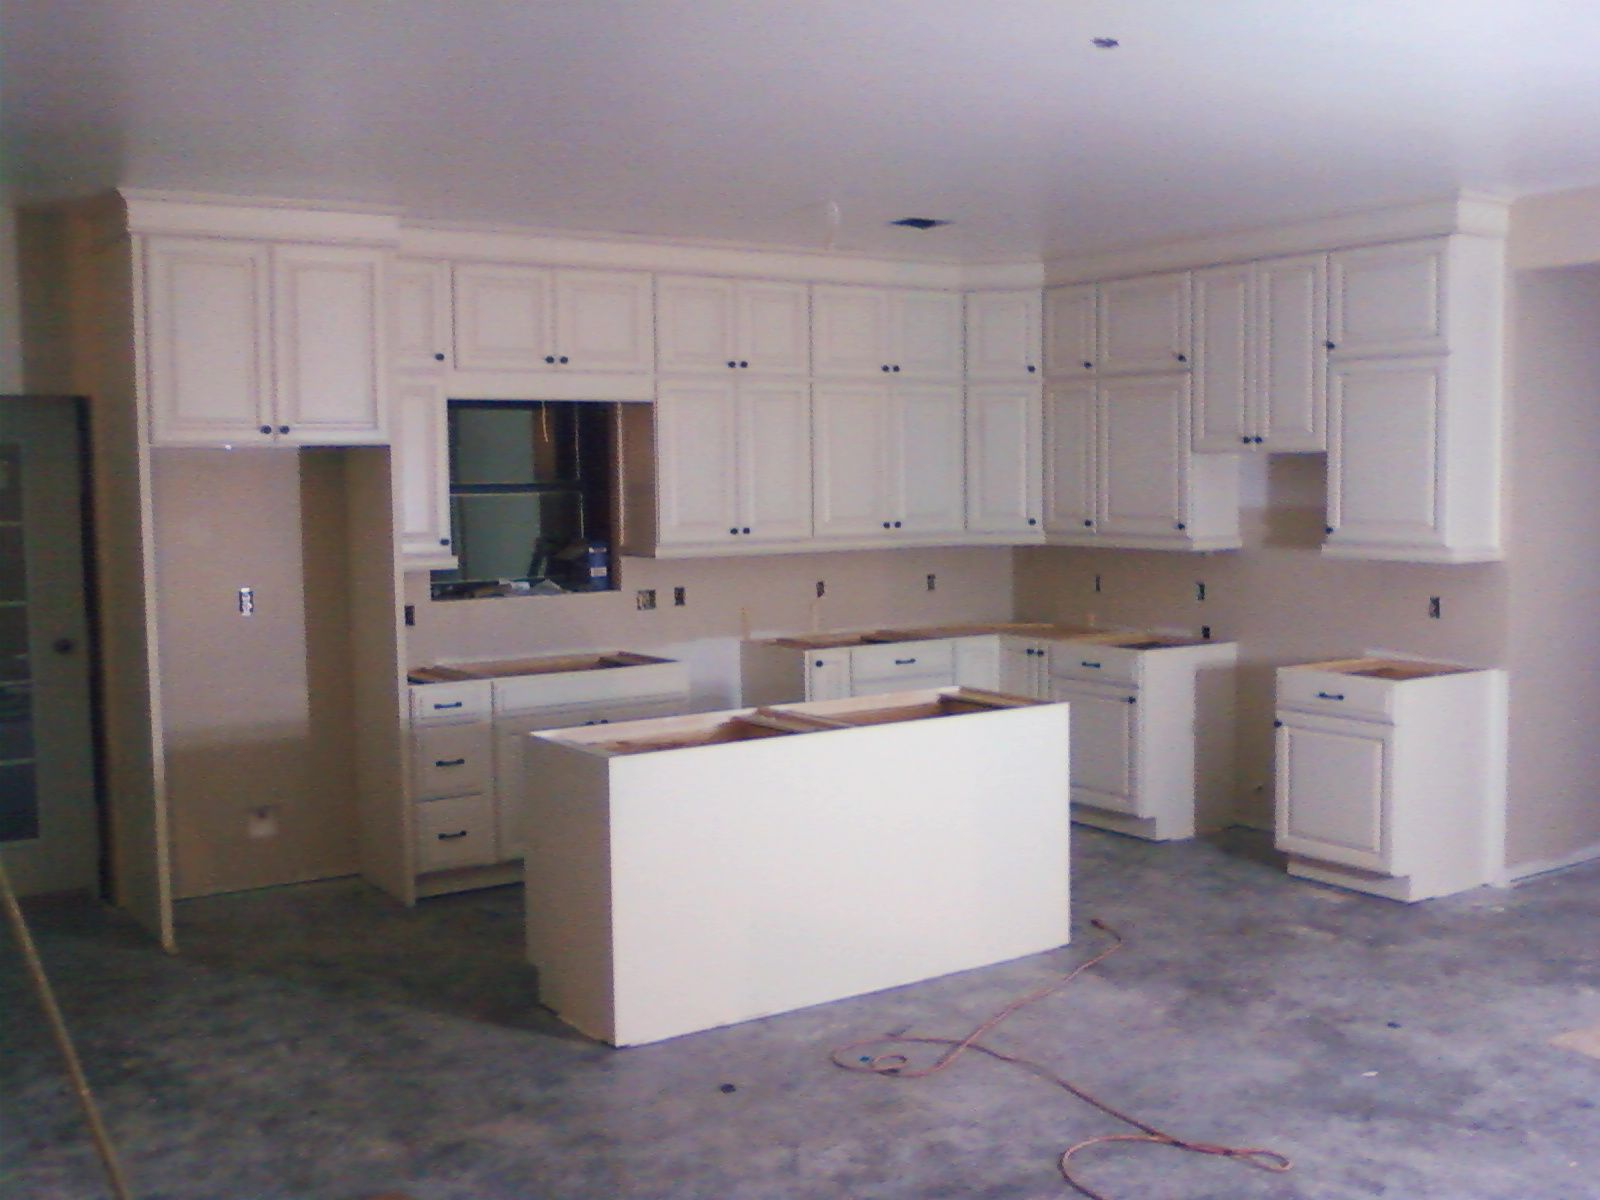 kitchen cabinets 9 foot ceiling Google Search